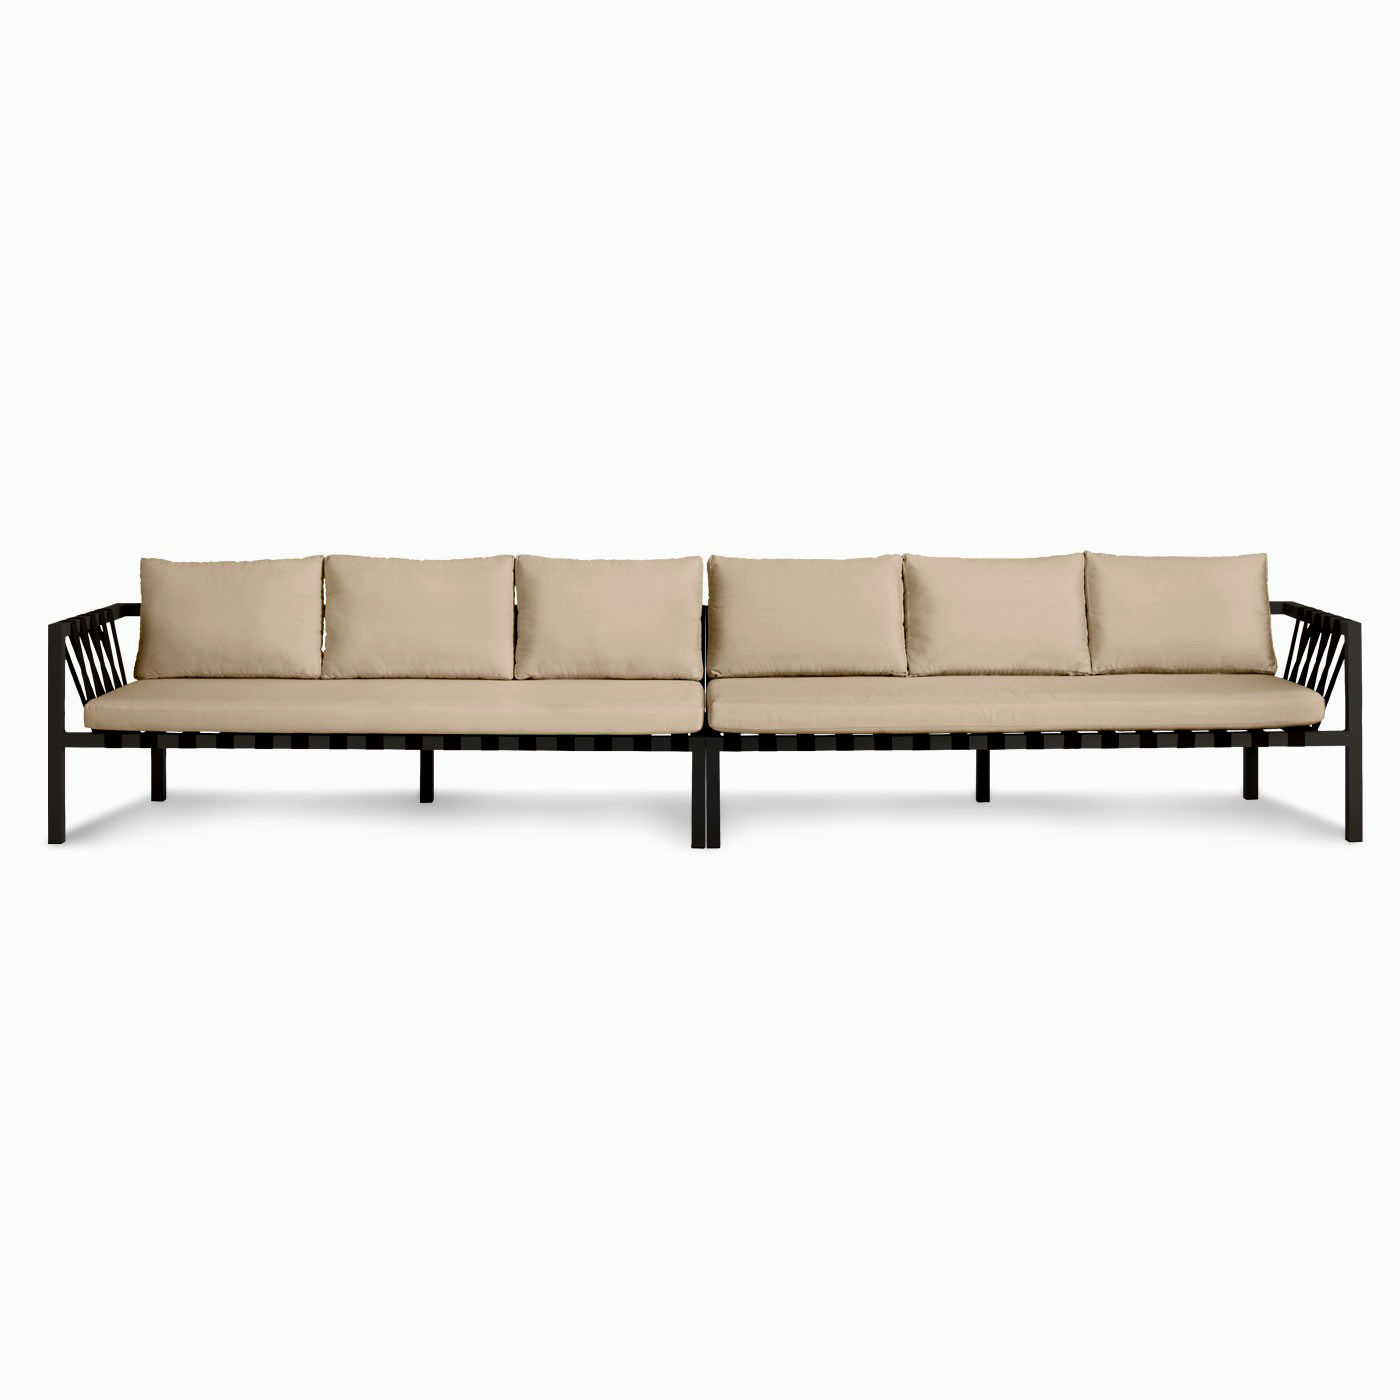 new outdoor sectional sofa inspiration-Stylish Outdoor Sectional sofa Design